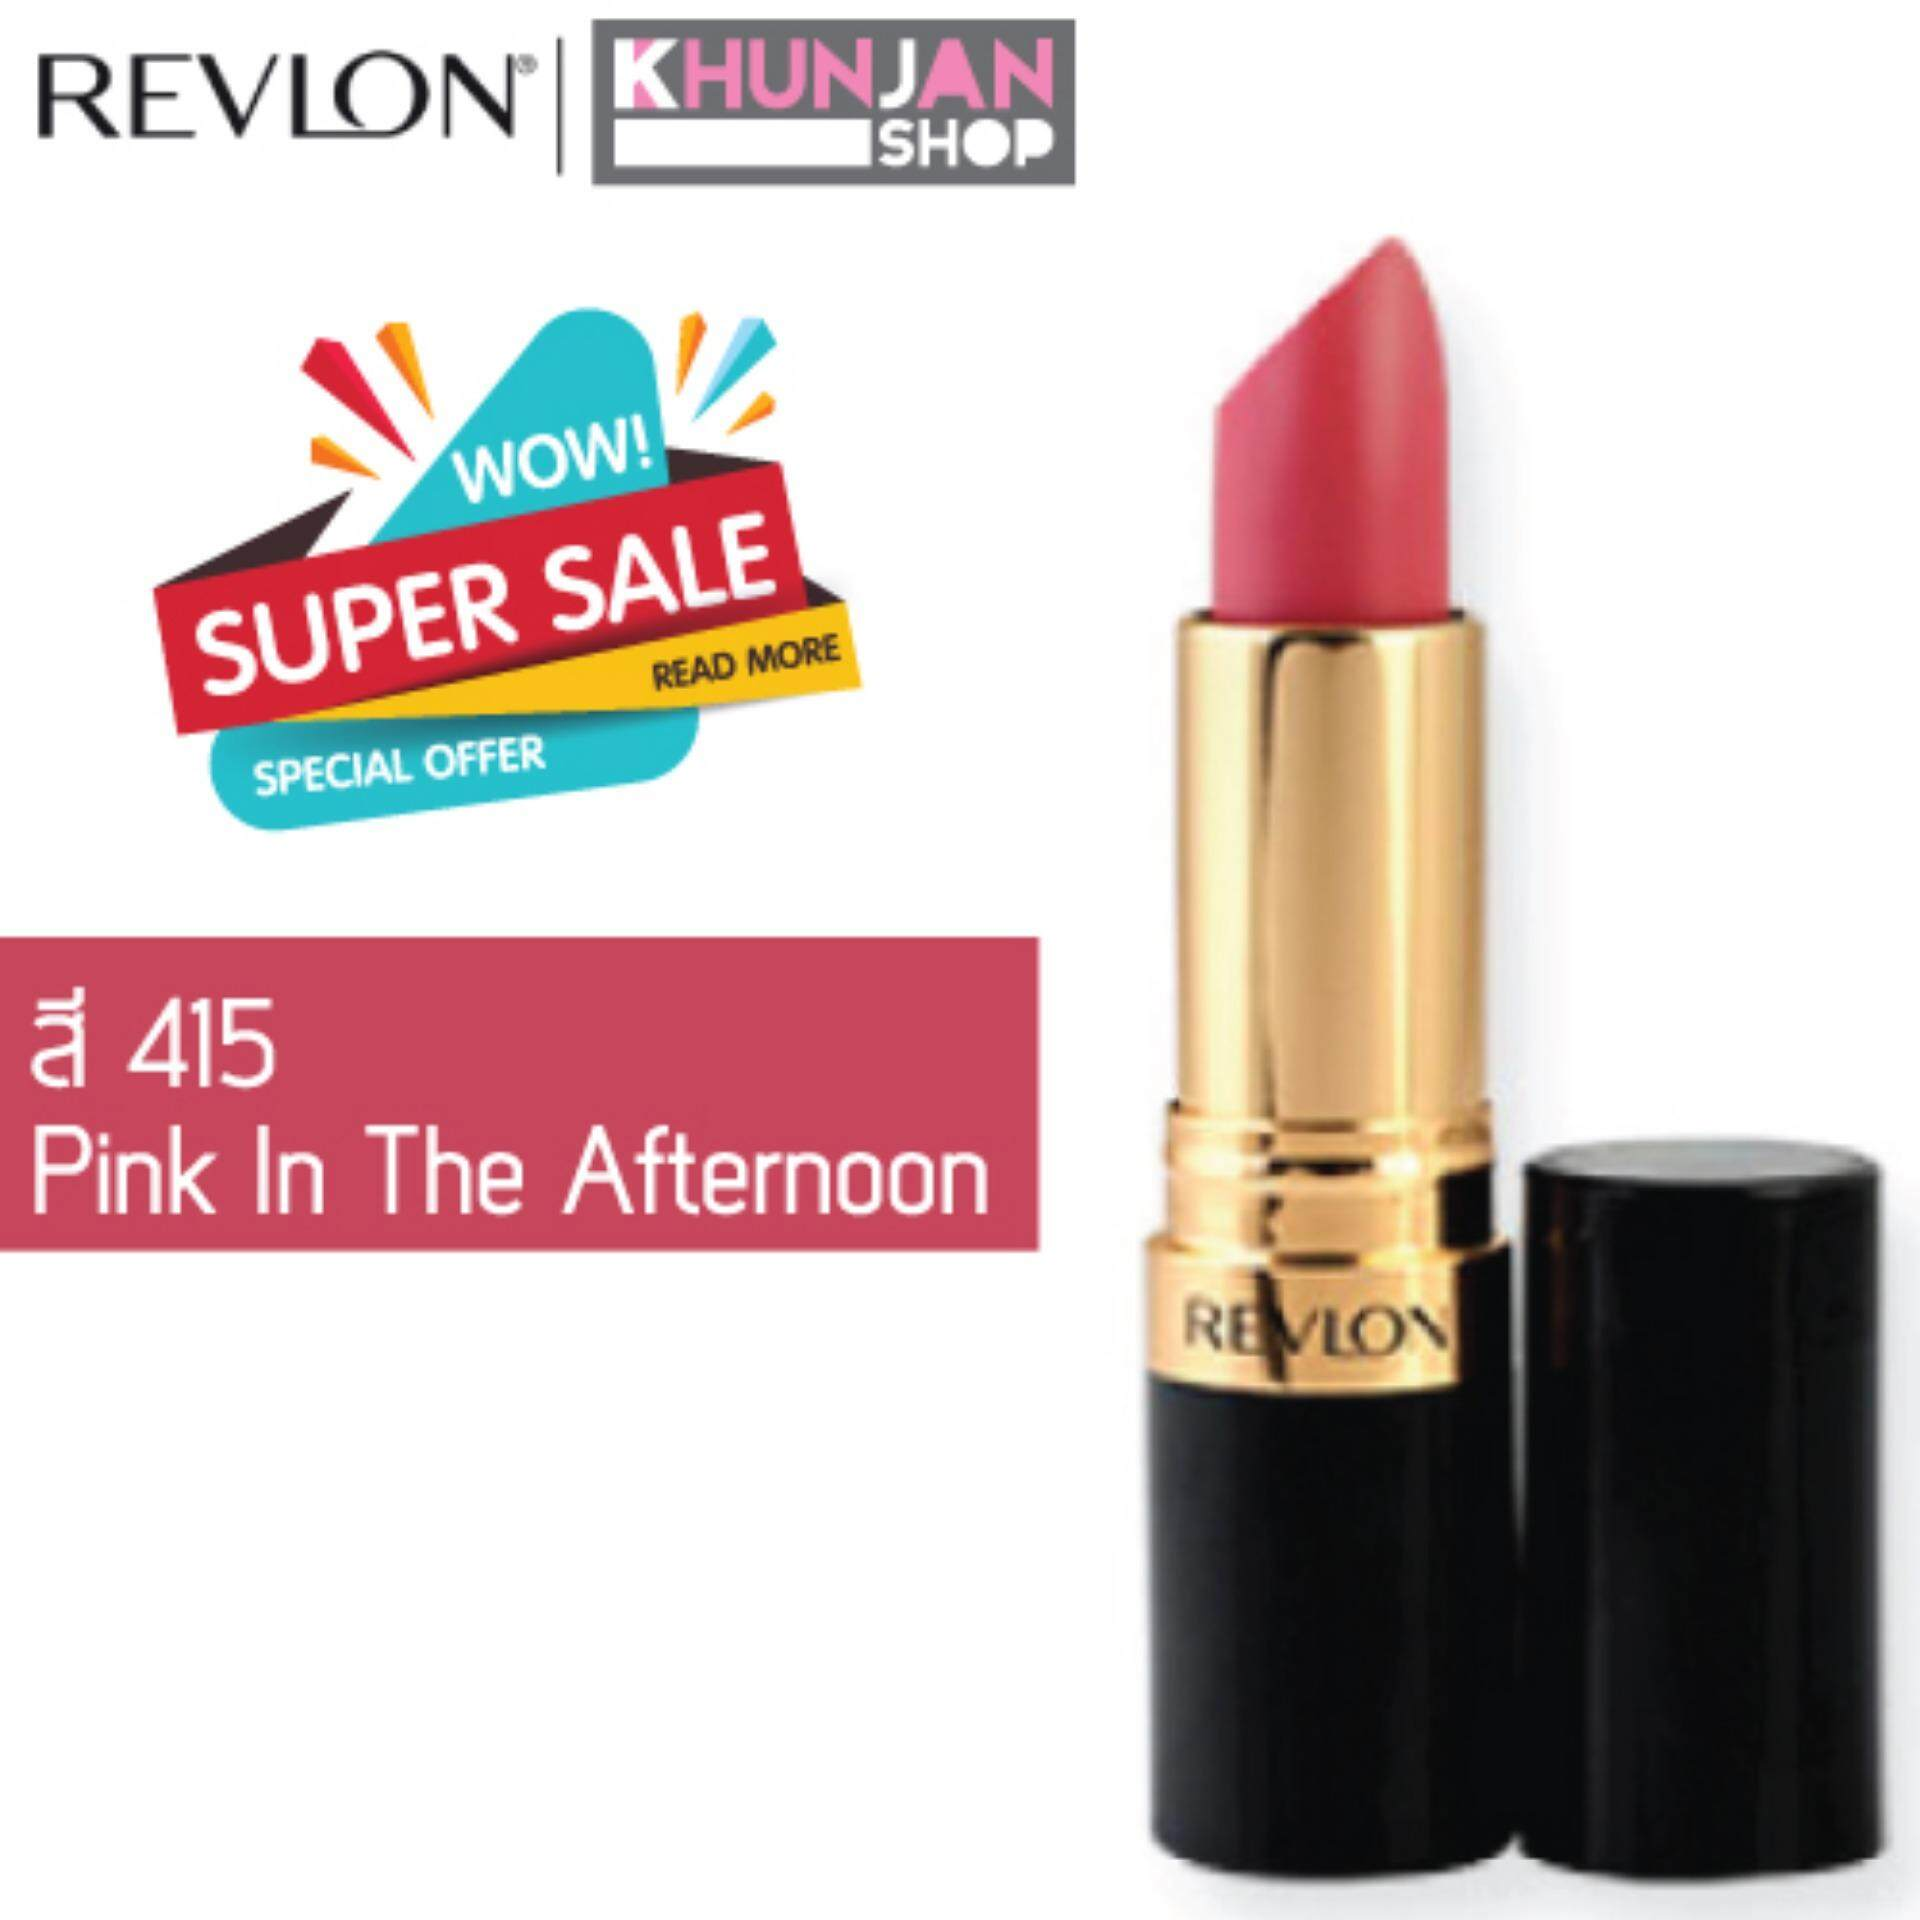 ขาย Revlon Super Lustrous Lipstick Cream 4 5G 415 Pink In The Afternoon ราคาถูกที่สุด